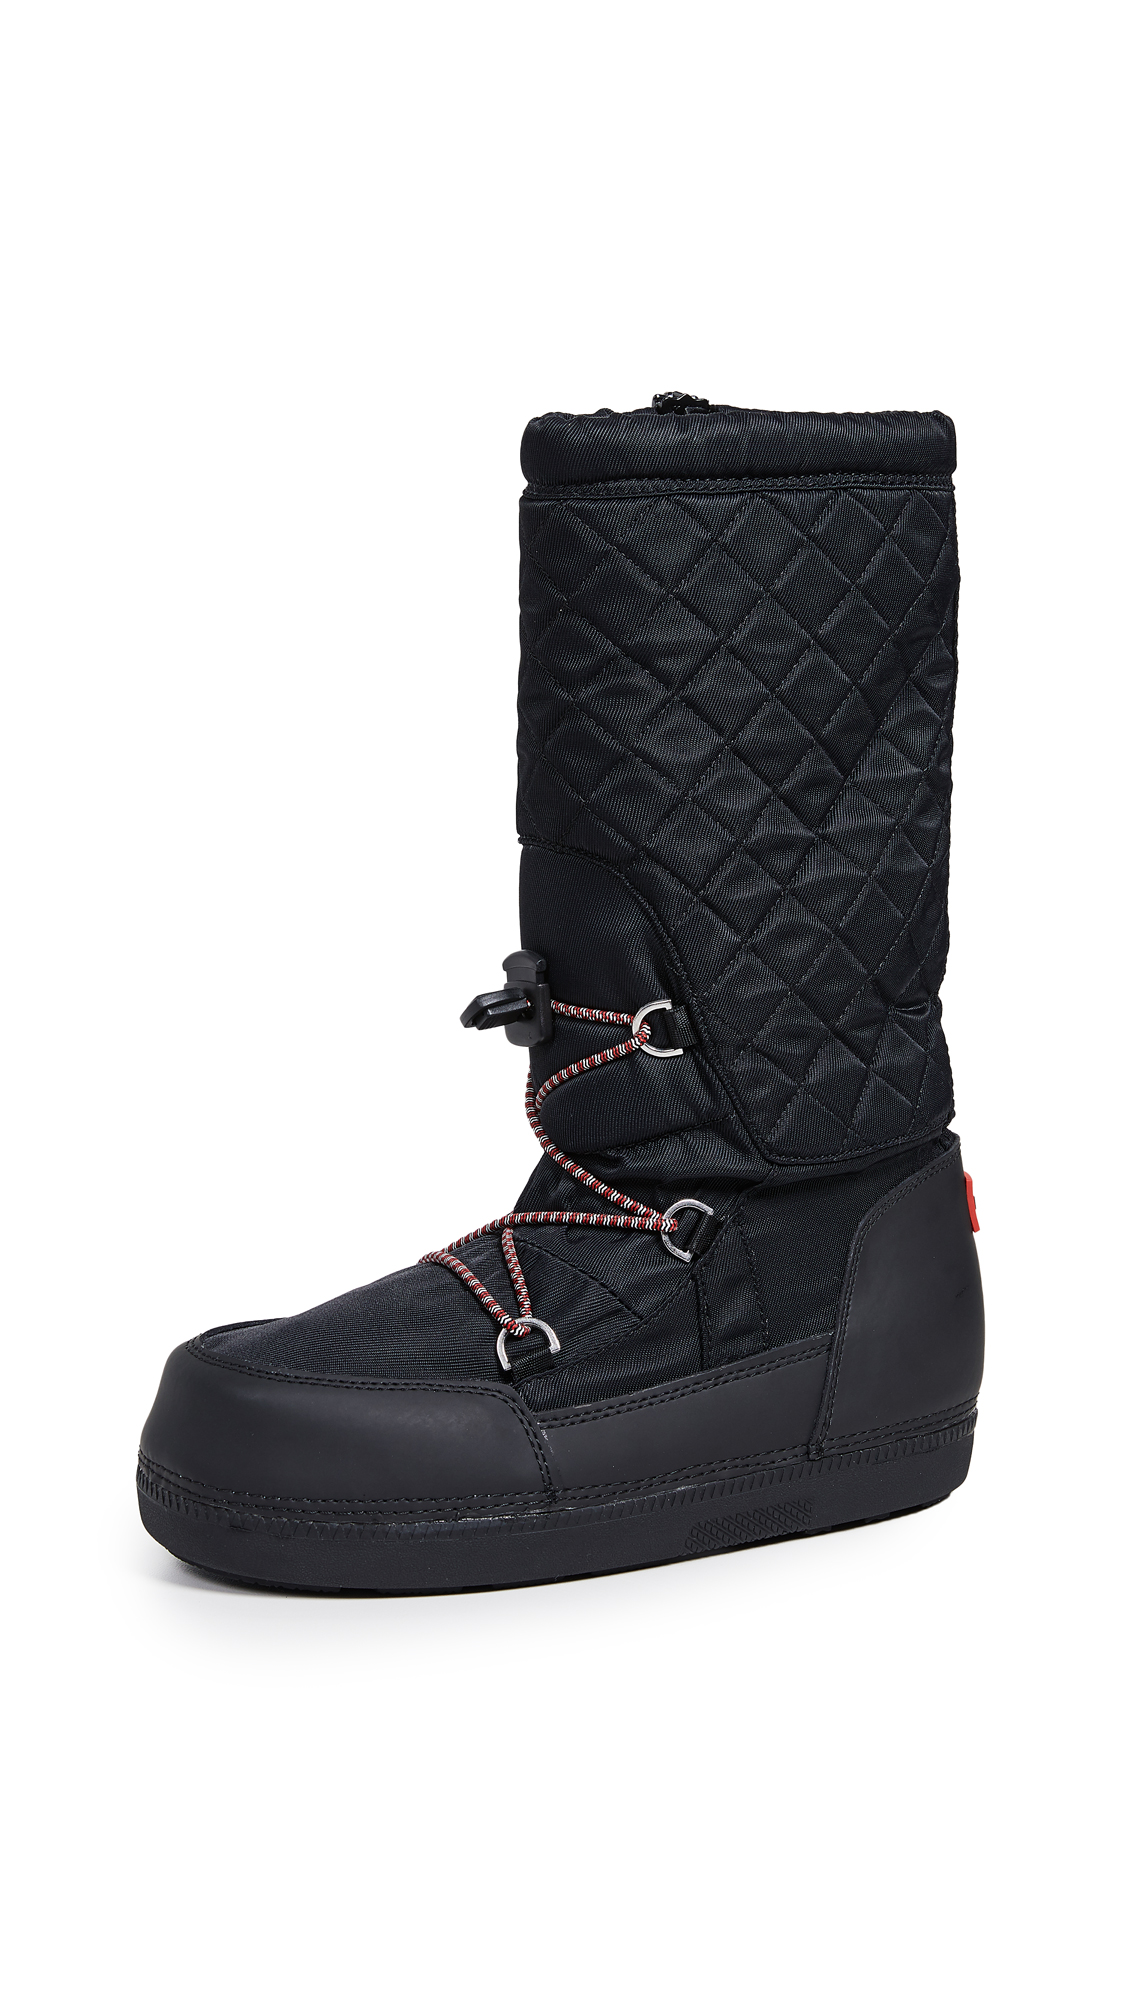 Hunter Boots Original Snow Quilted Boots - Black/Black